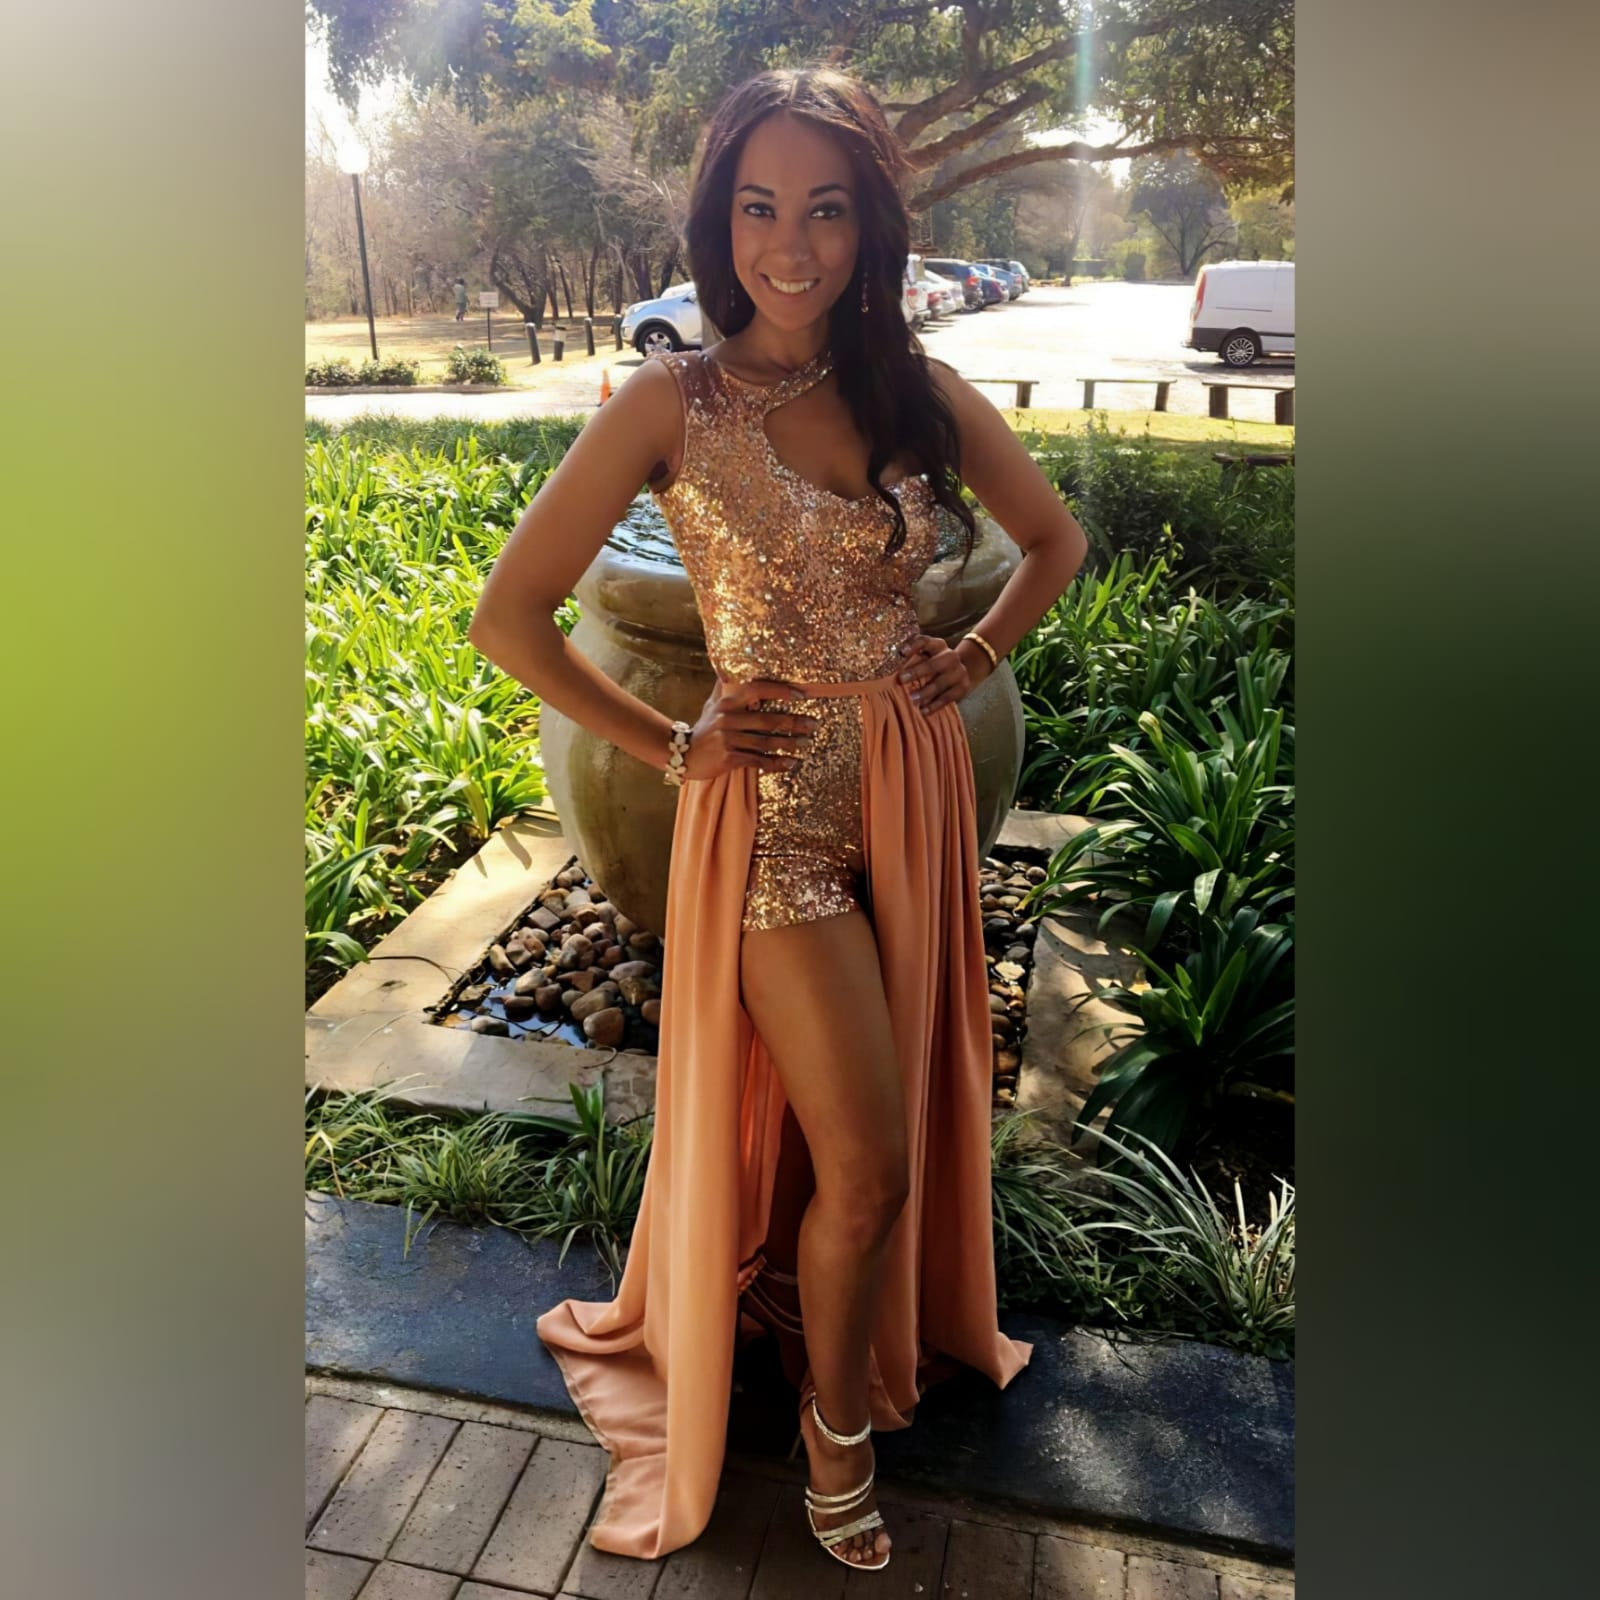 2 piece rose gold evening outfit 4 2 piece rose gold evening outfit , worn at a beauty pageant. A short leg bodysuit with a different neckline. Chiffon removal gathered skirt with a slit and a train